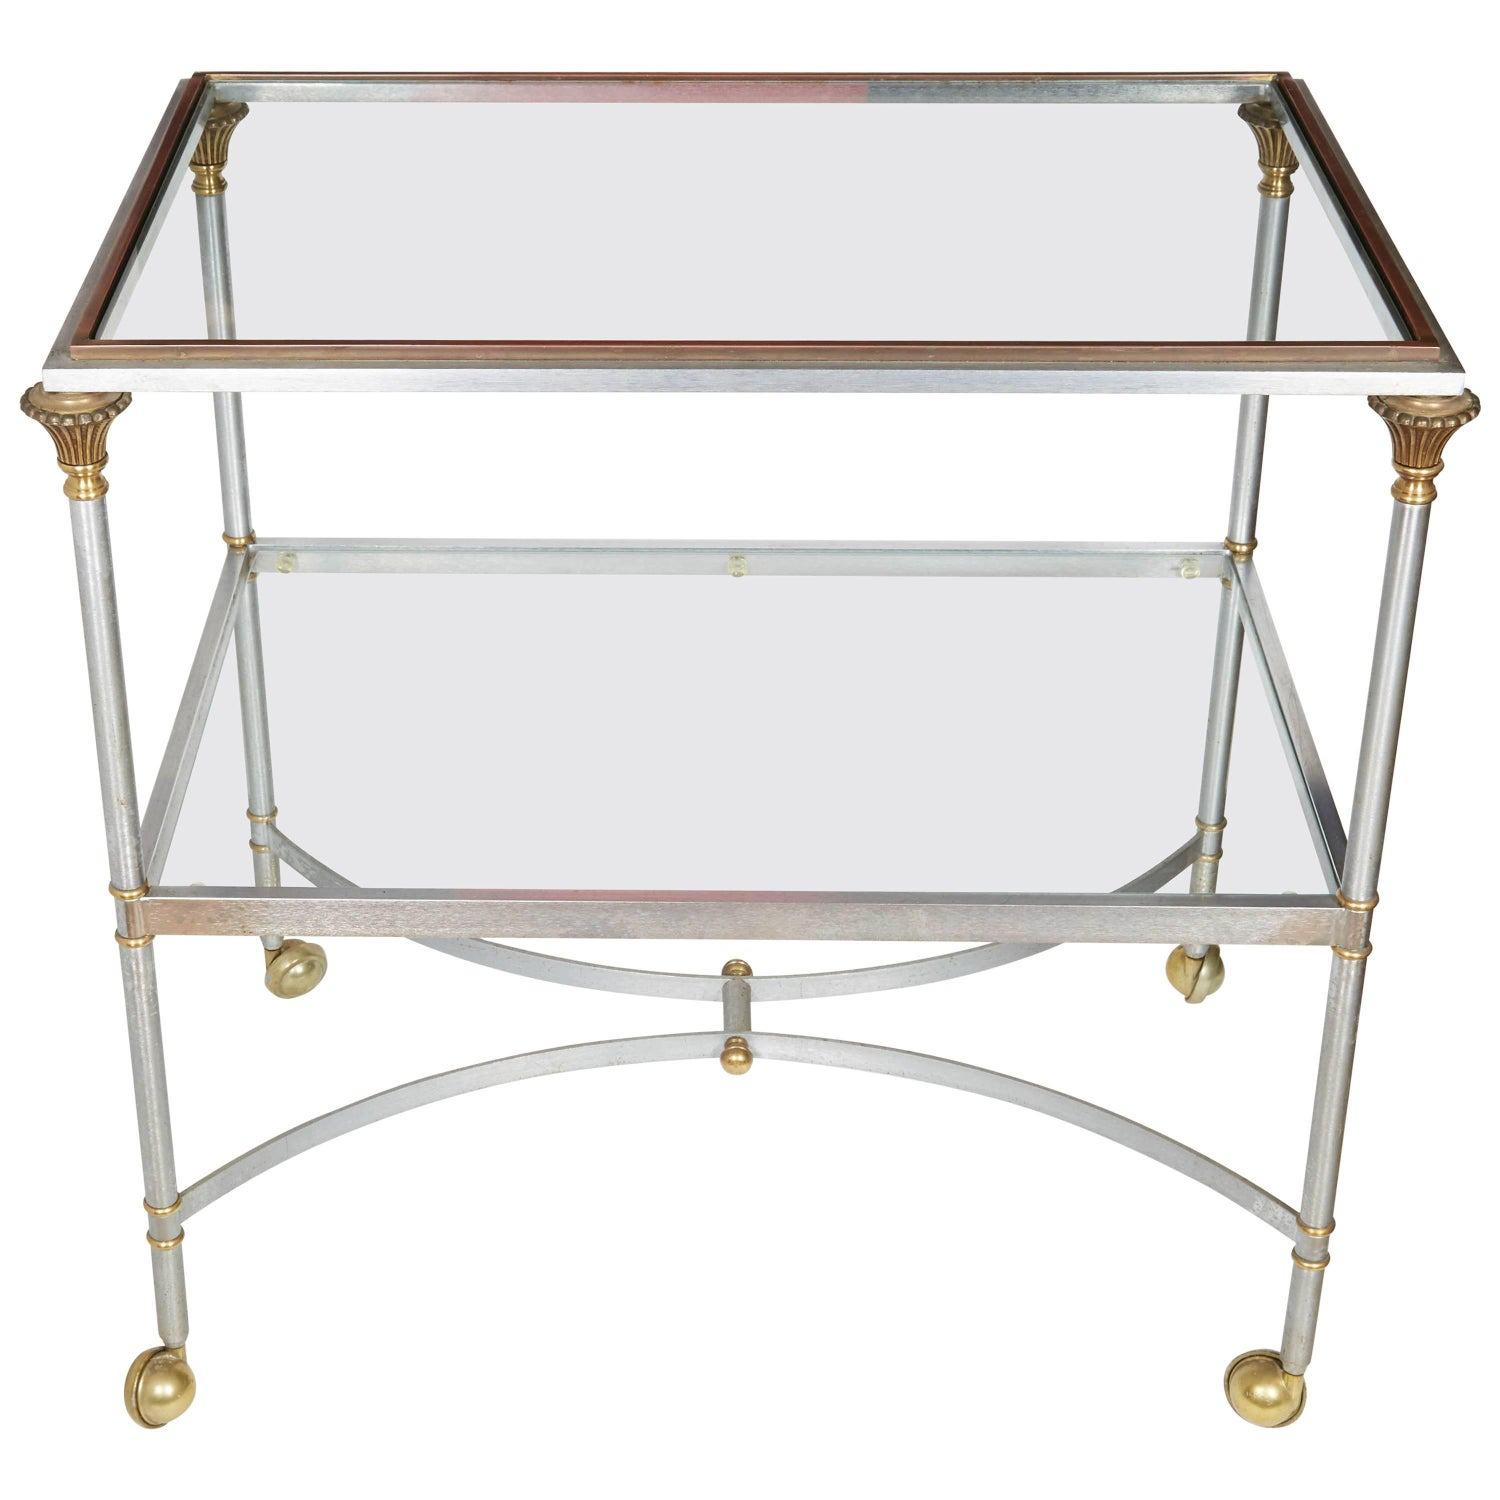 "Classic Vintage French 55"" Square Two Tier Brass and Glass Coffee"